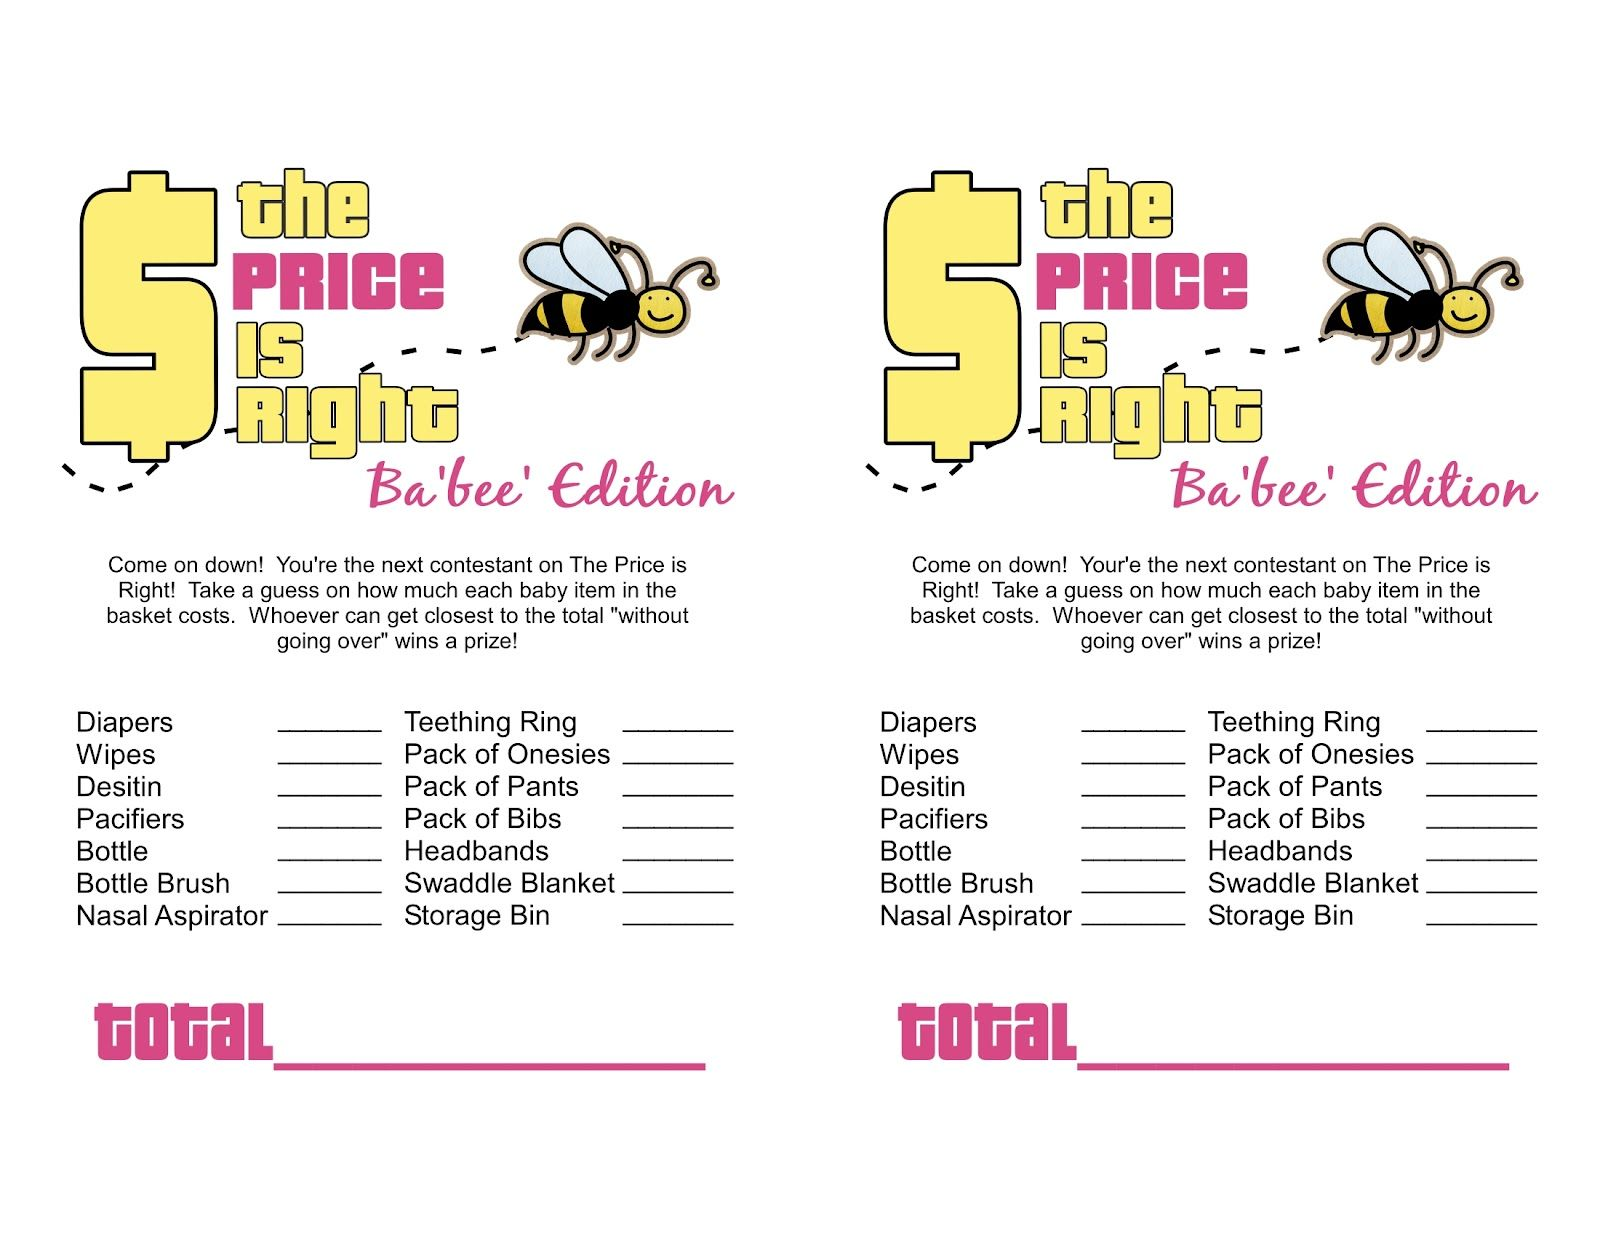 Pin By Sheeks On T Baby Shower Pinterest Baby Shower Stuff And Free  Printable Baby Shower Jeopardy Game Free Printable Baby Shower Price Is  Right Game